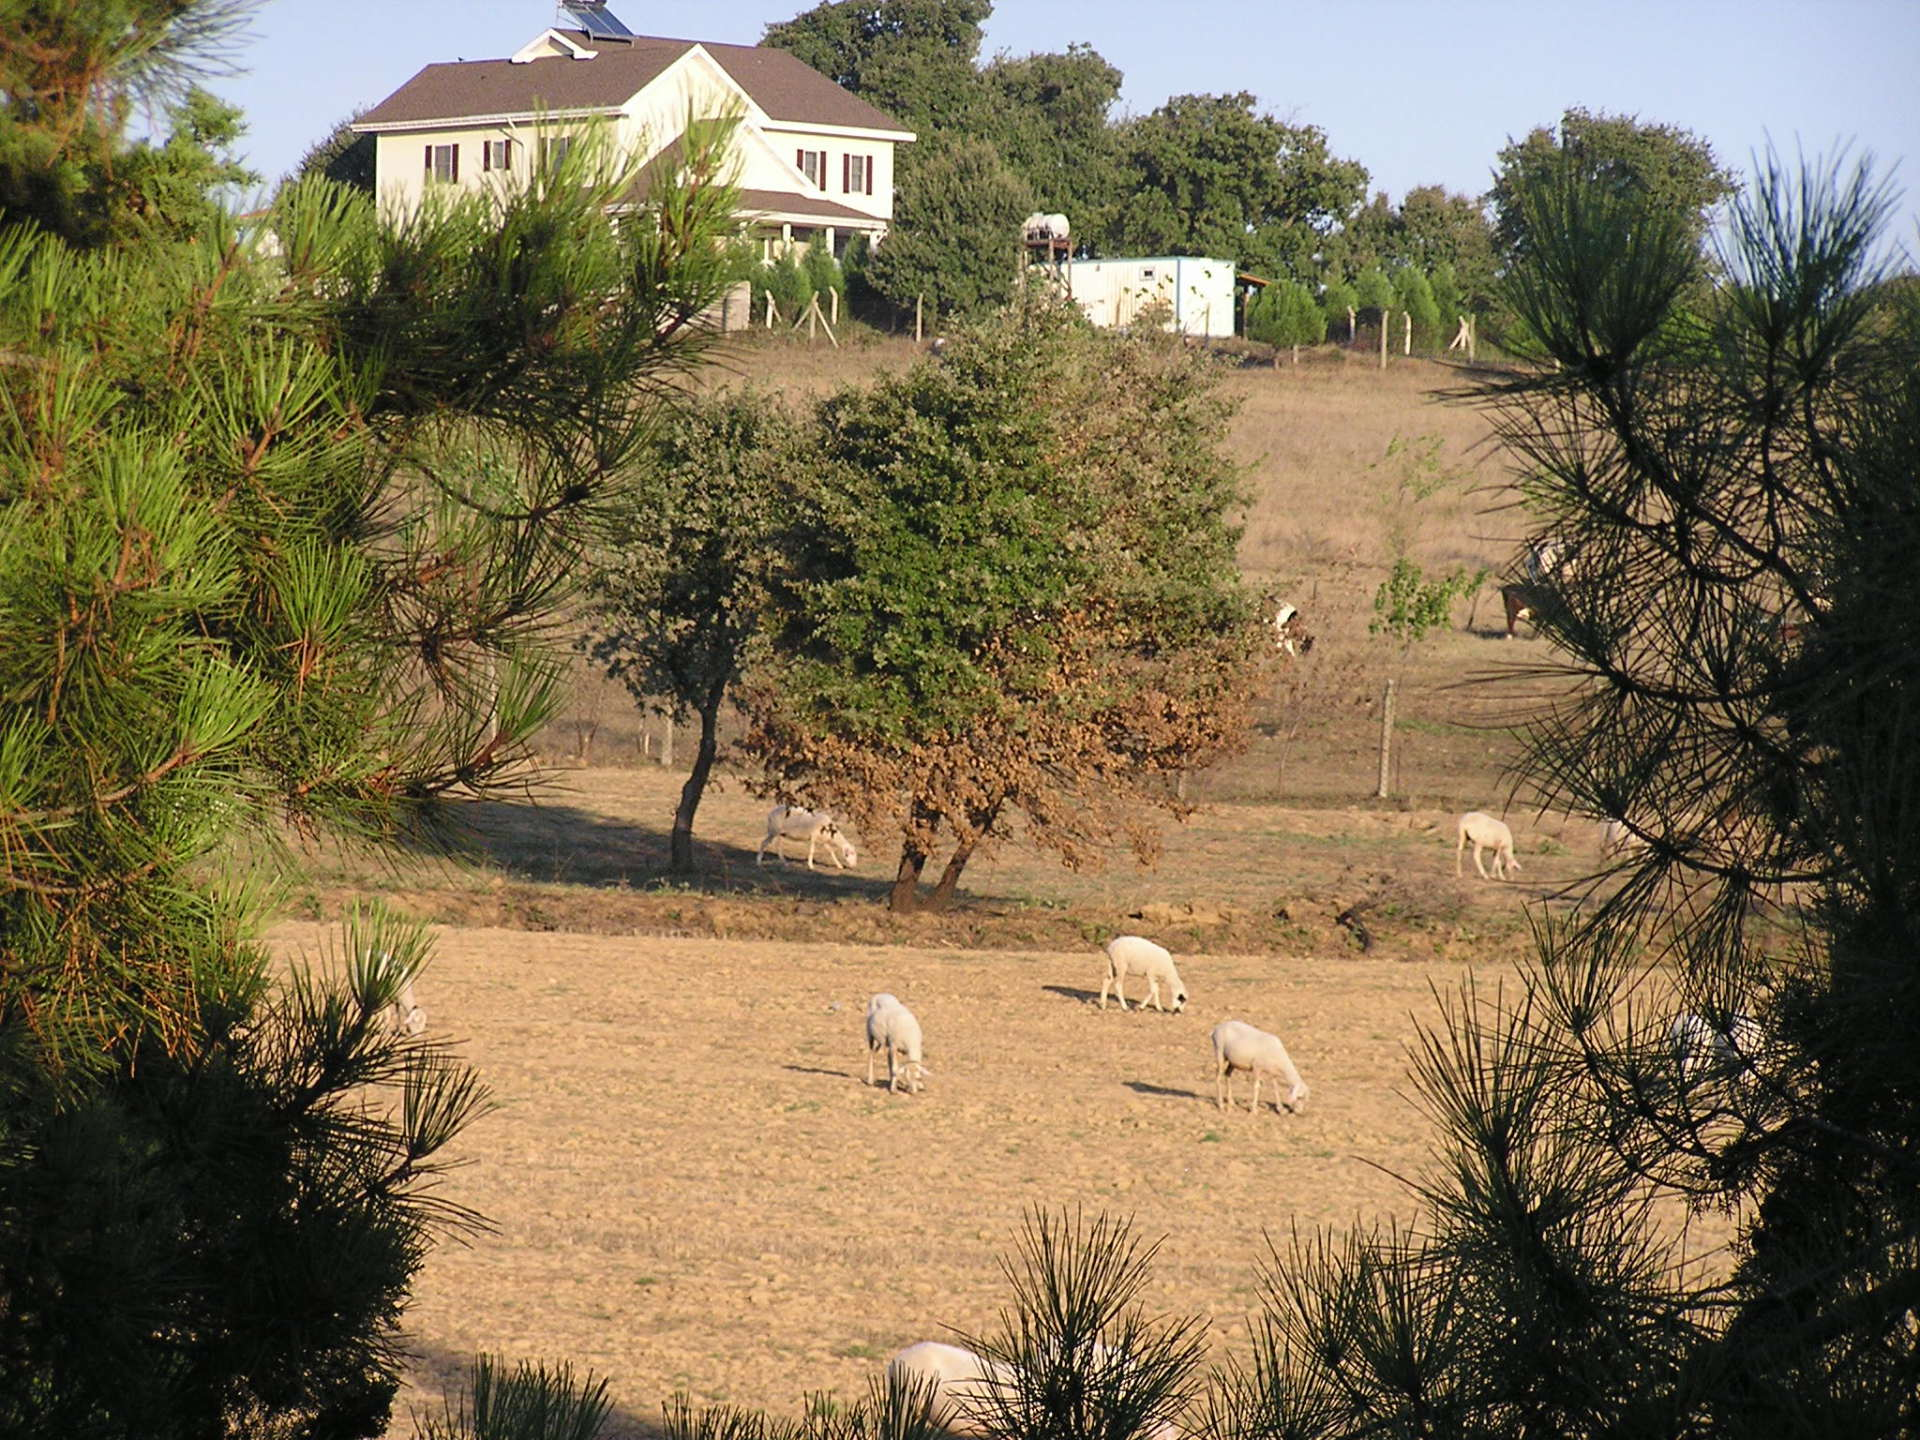 My apartment resounded with sheep bells from this pasture. Istanbul, Turkey: annmariemershon.com